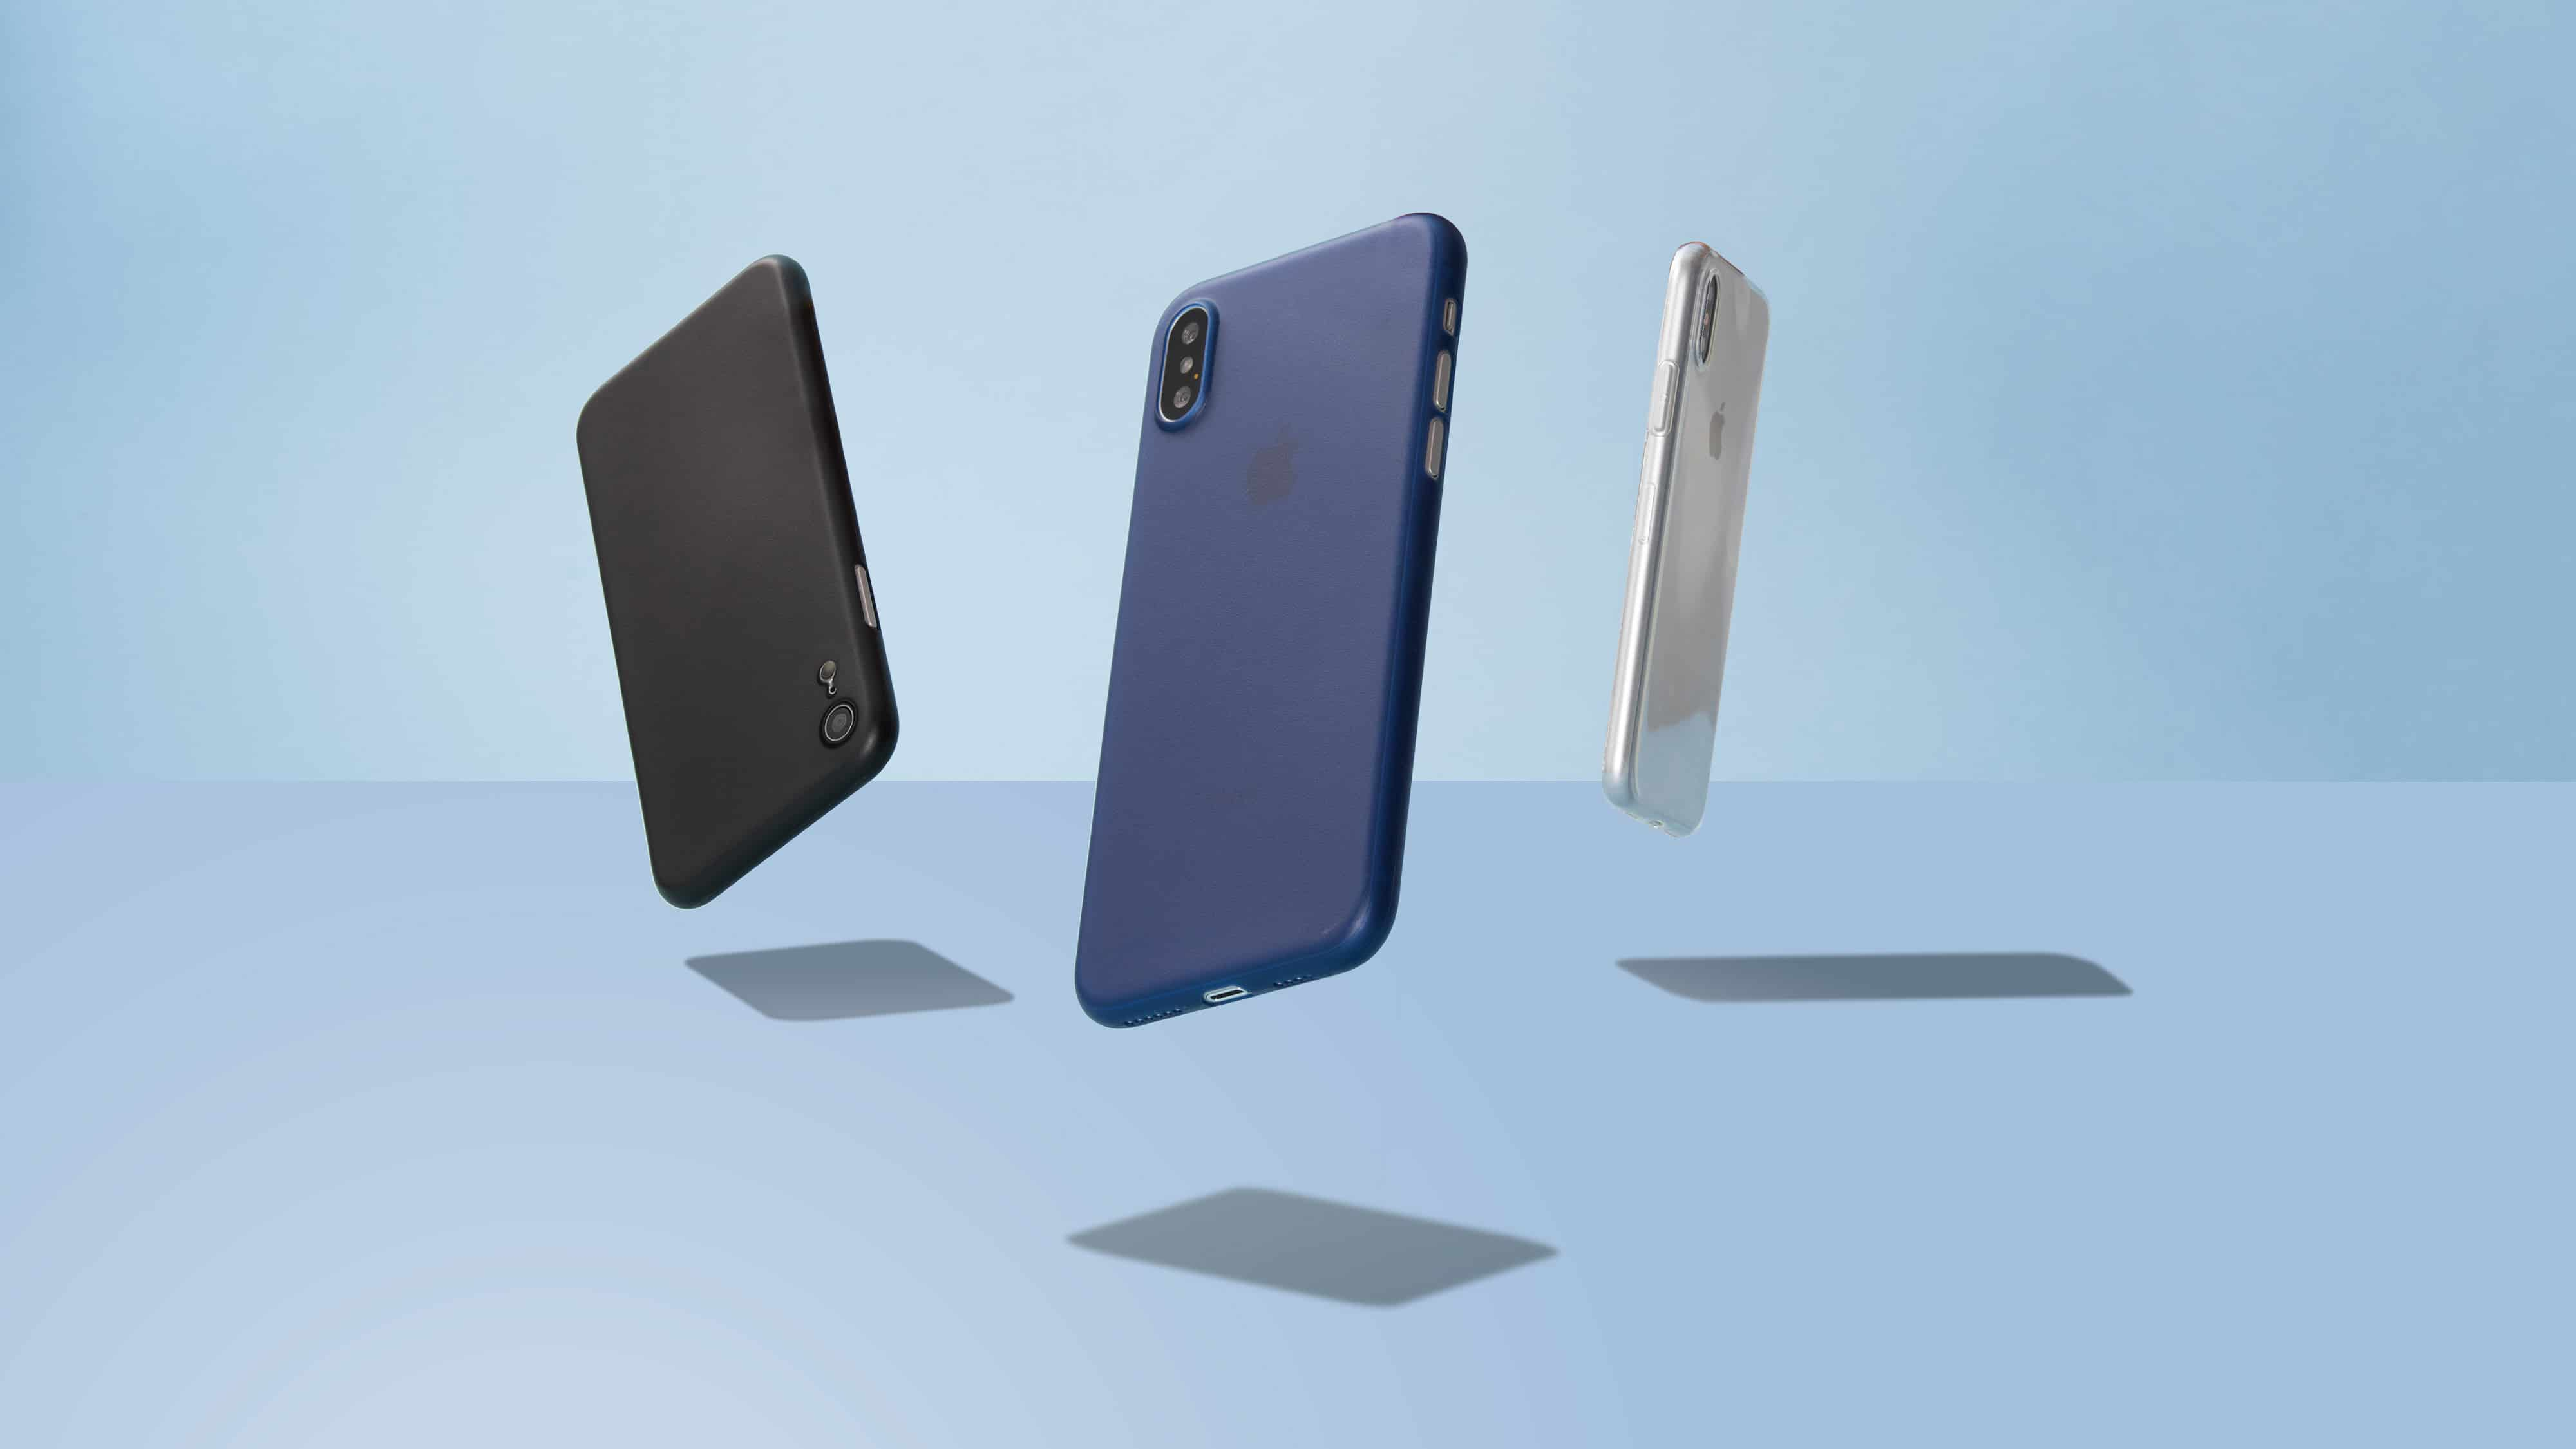 Totallee's latest line of iPhone cases offer a layer of protection that doesn't obscure the devices' subtle design.